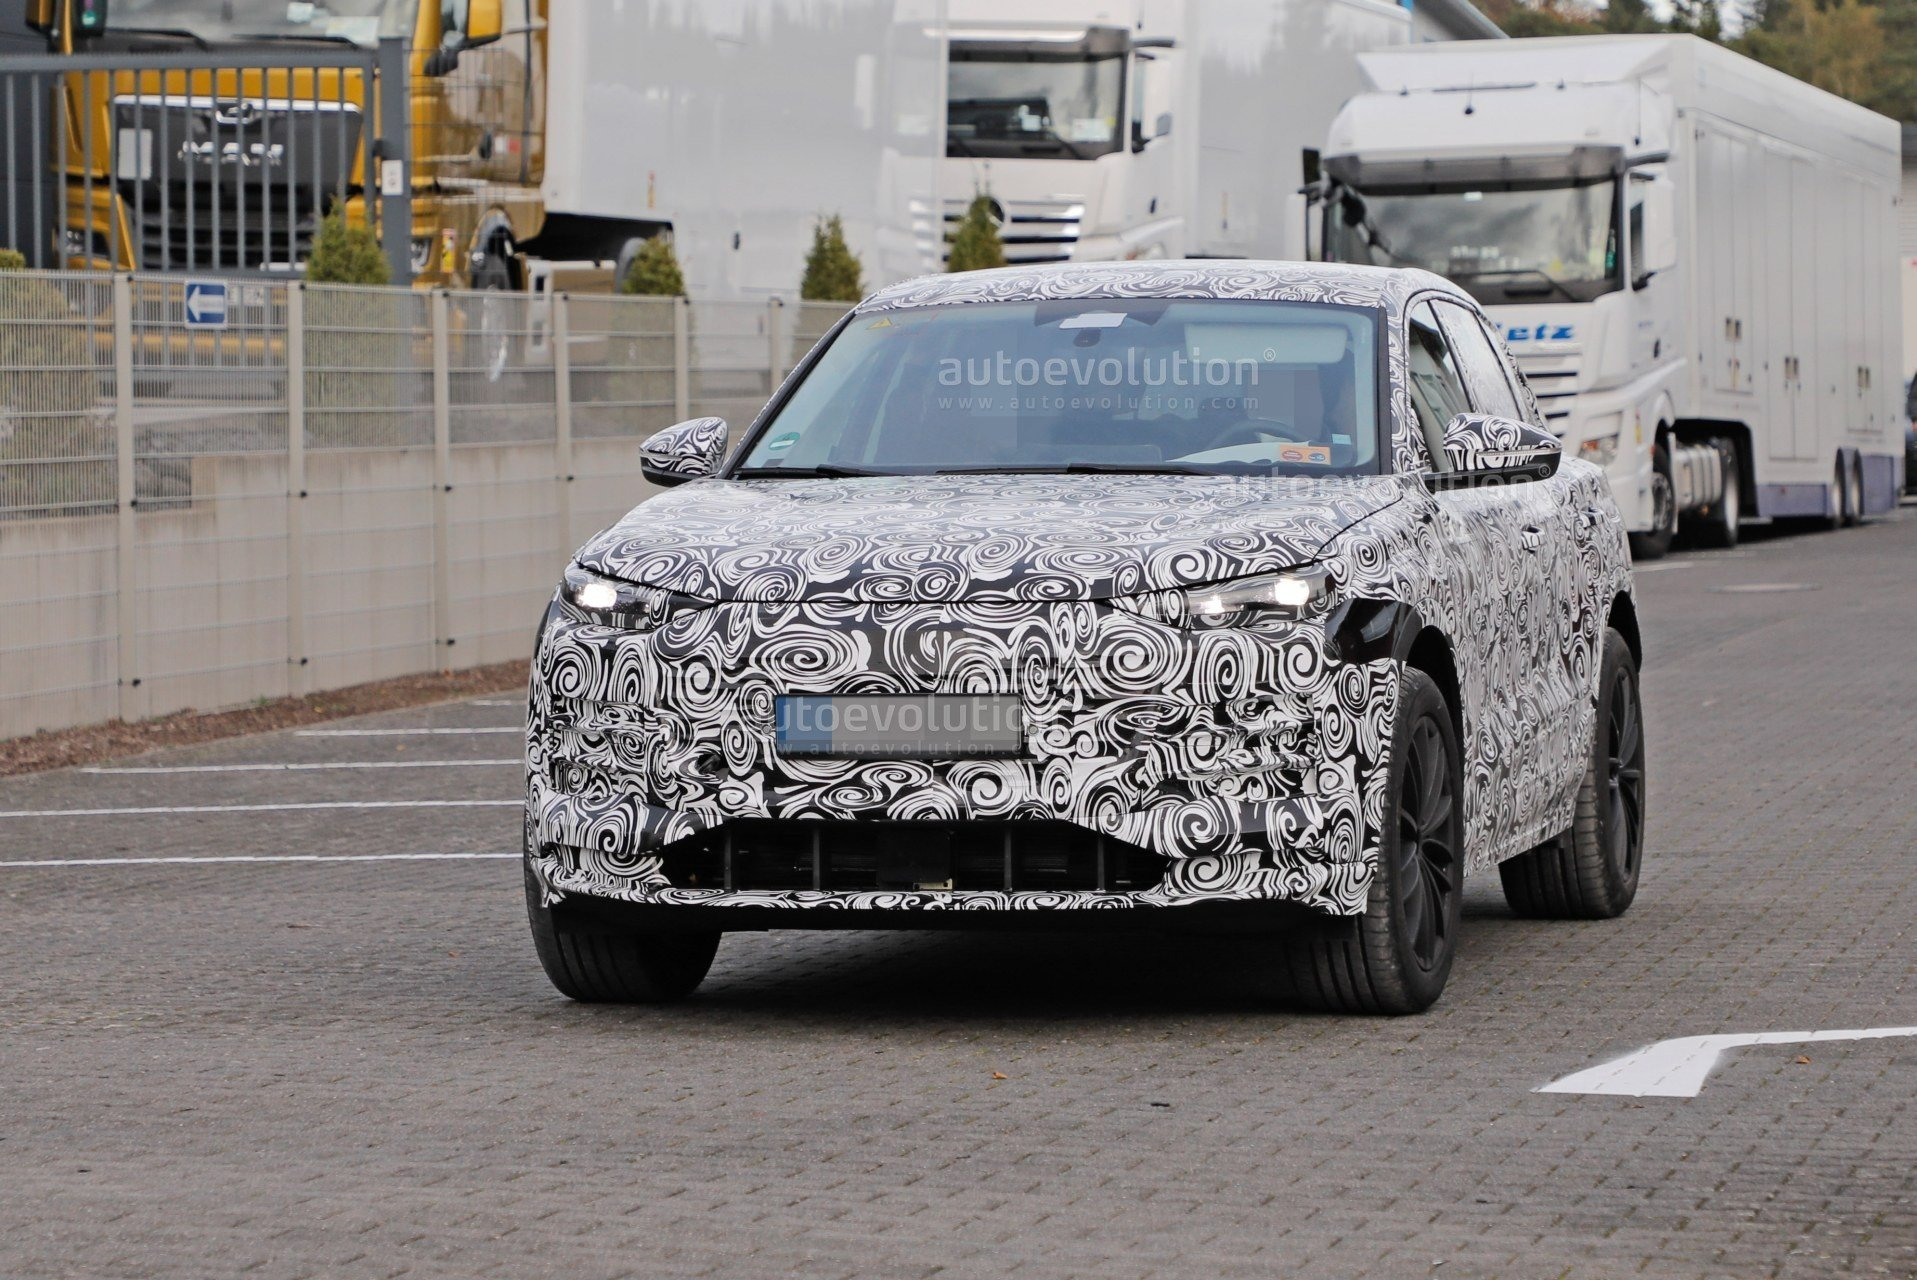 2023-audi-q6-e-tron-prototype-spied-wearing-full-camouflage-is-fully-electric_2.jpg